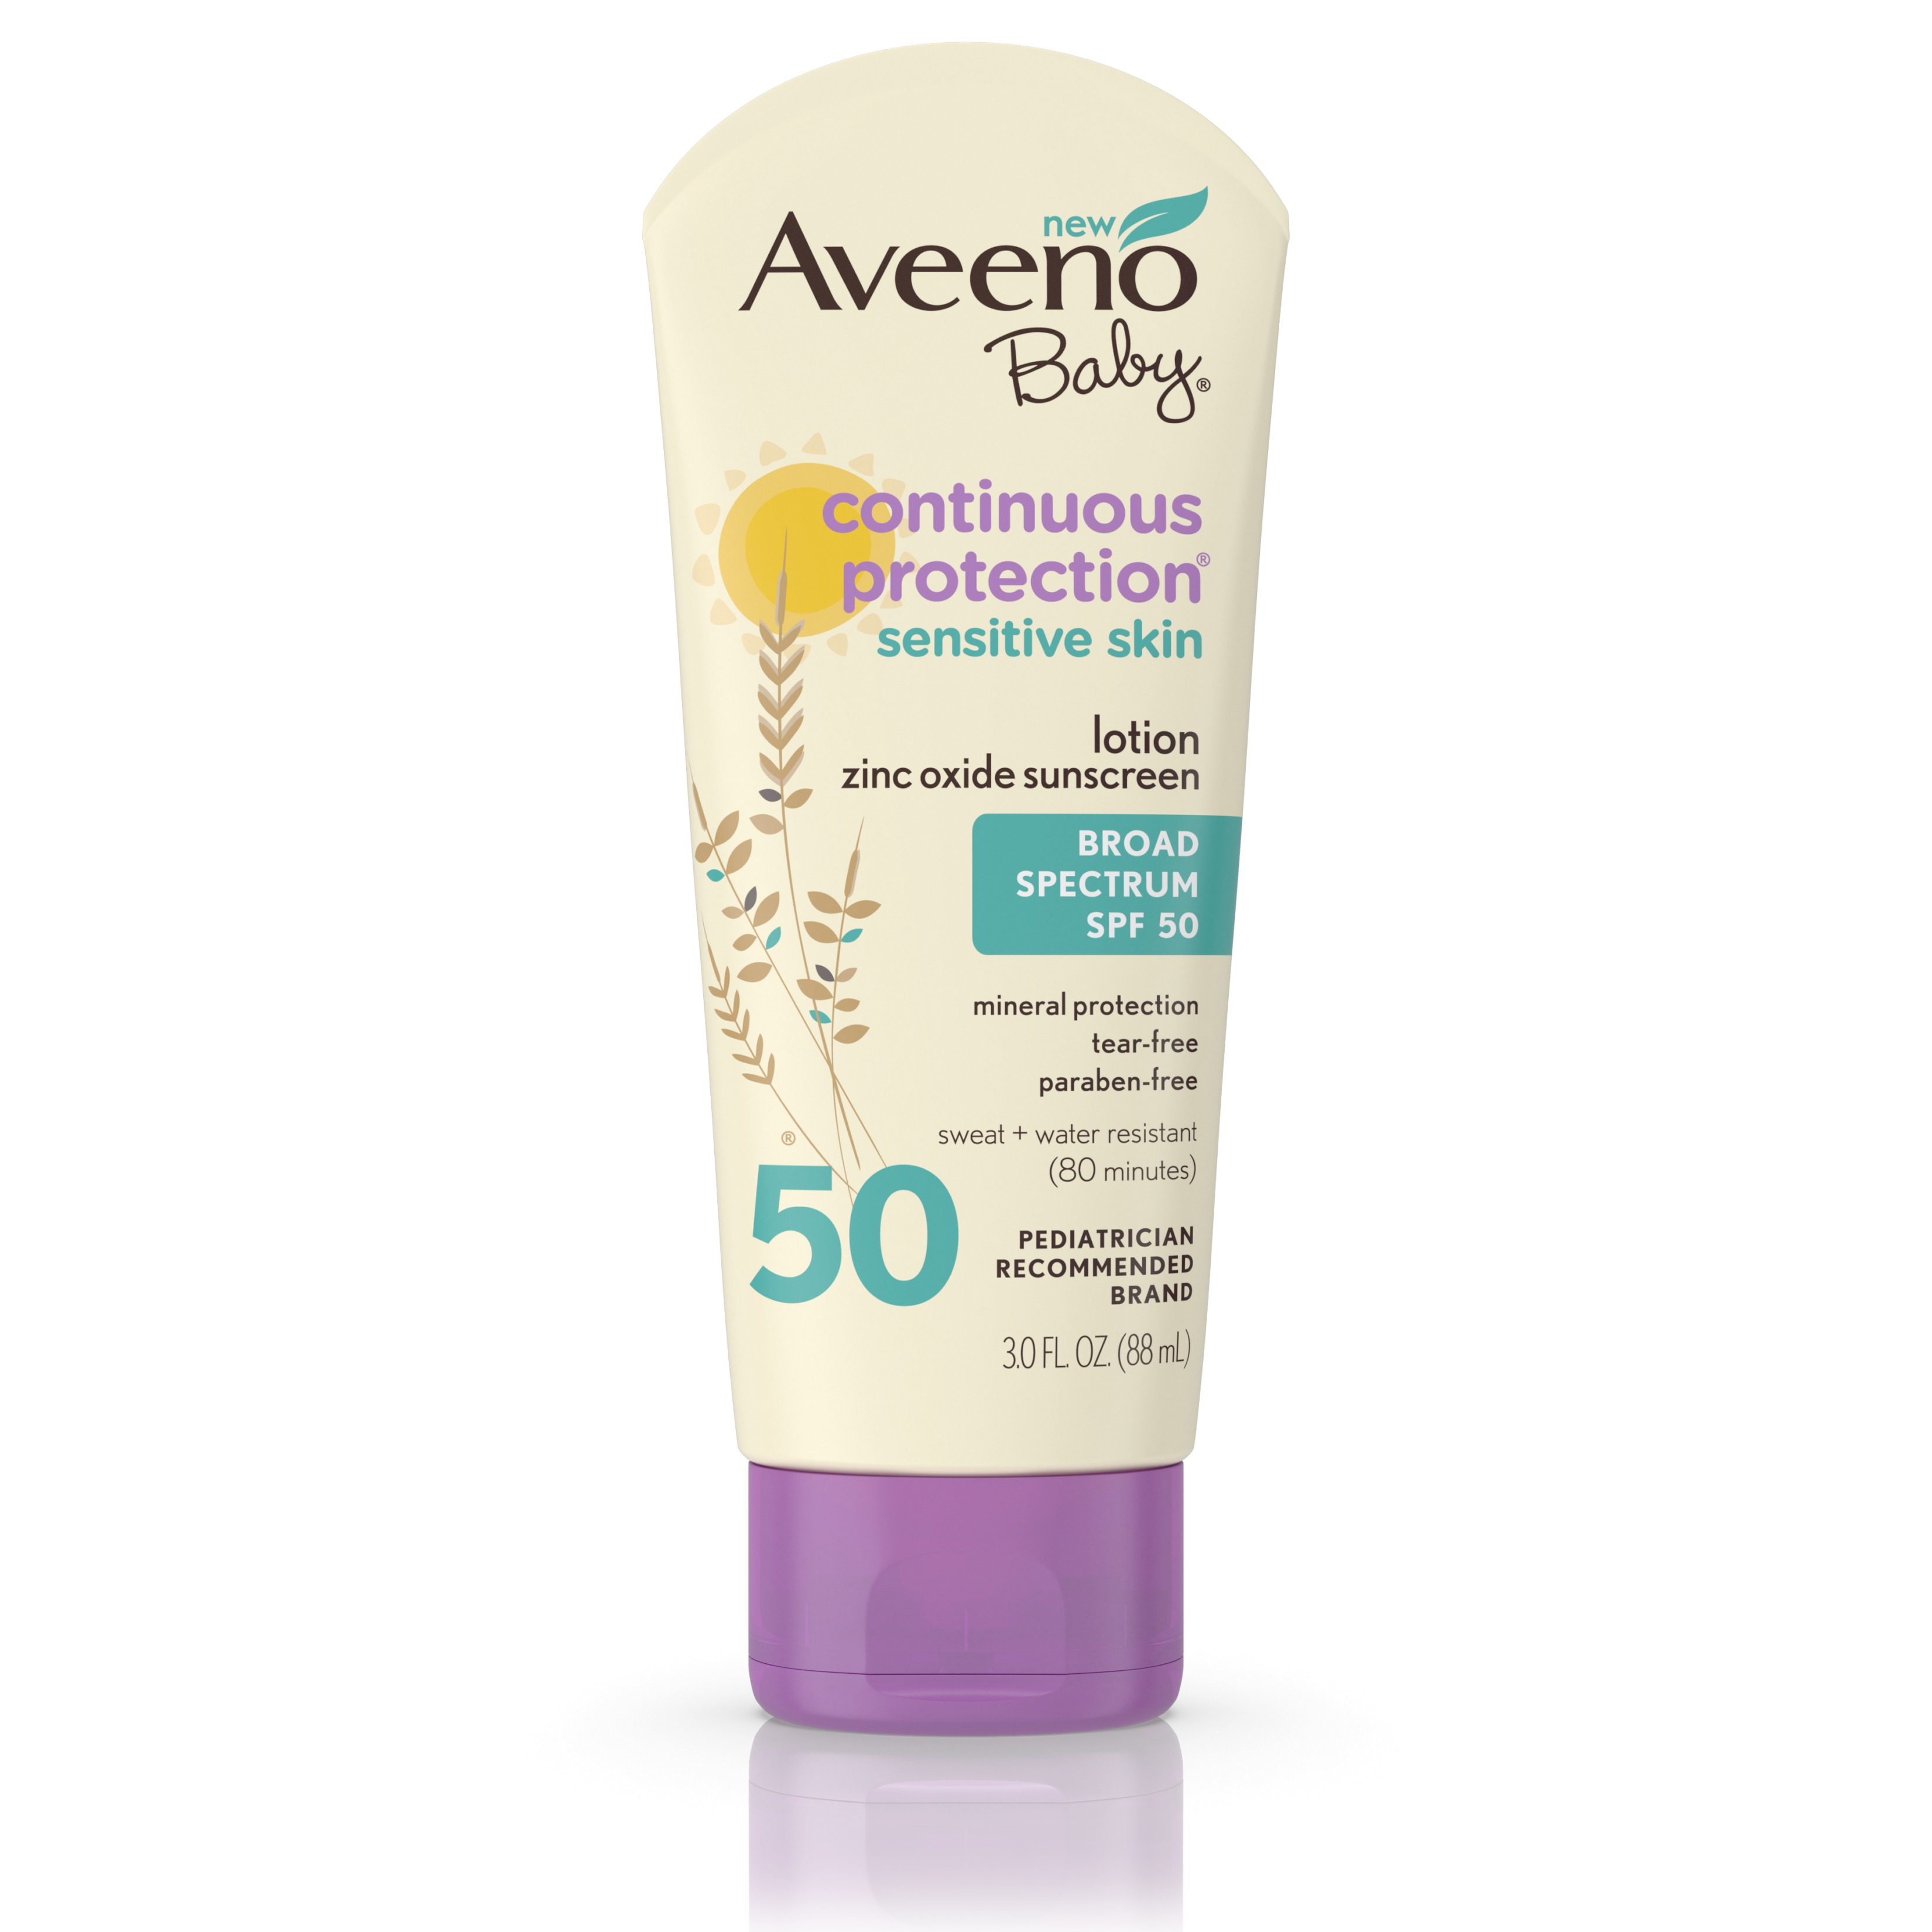 Aveeno Baby Continuous Protection Lotion Sunscreen With Broad Spectrum Spf 50, Sweat And Water Resistant, 3 Oz.<br> - Walmart.com